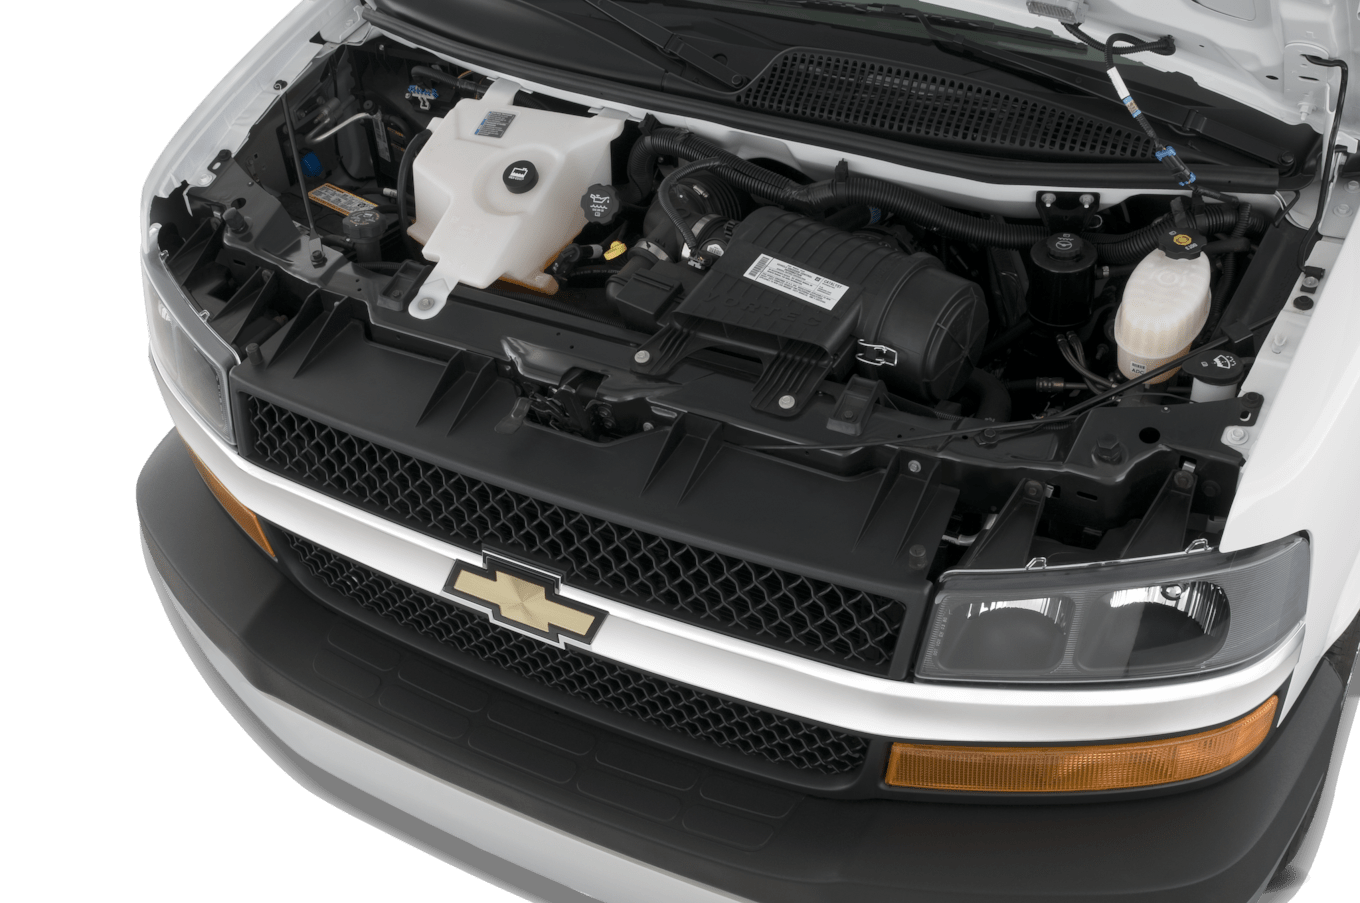 hight resolution of 2012 chevrolet express reviews and rating motortrend toyota fuse location chevrolet express fuse box location